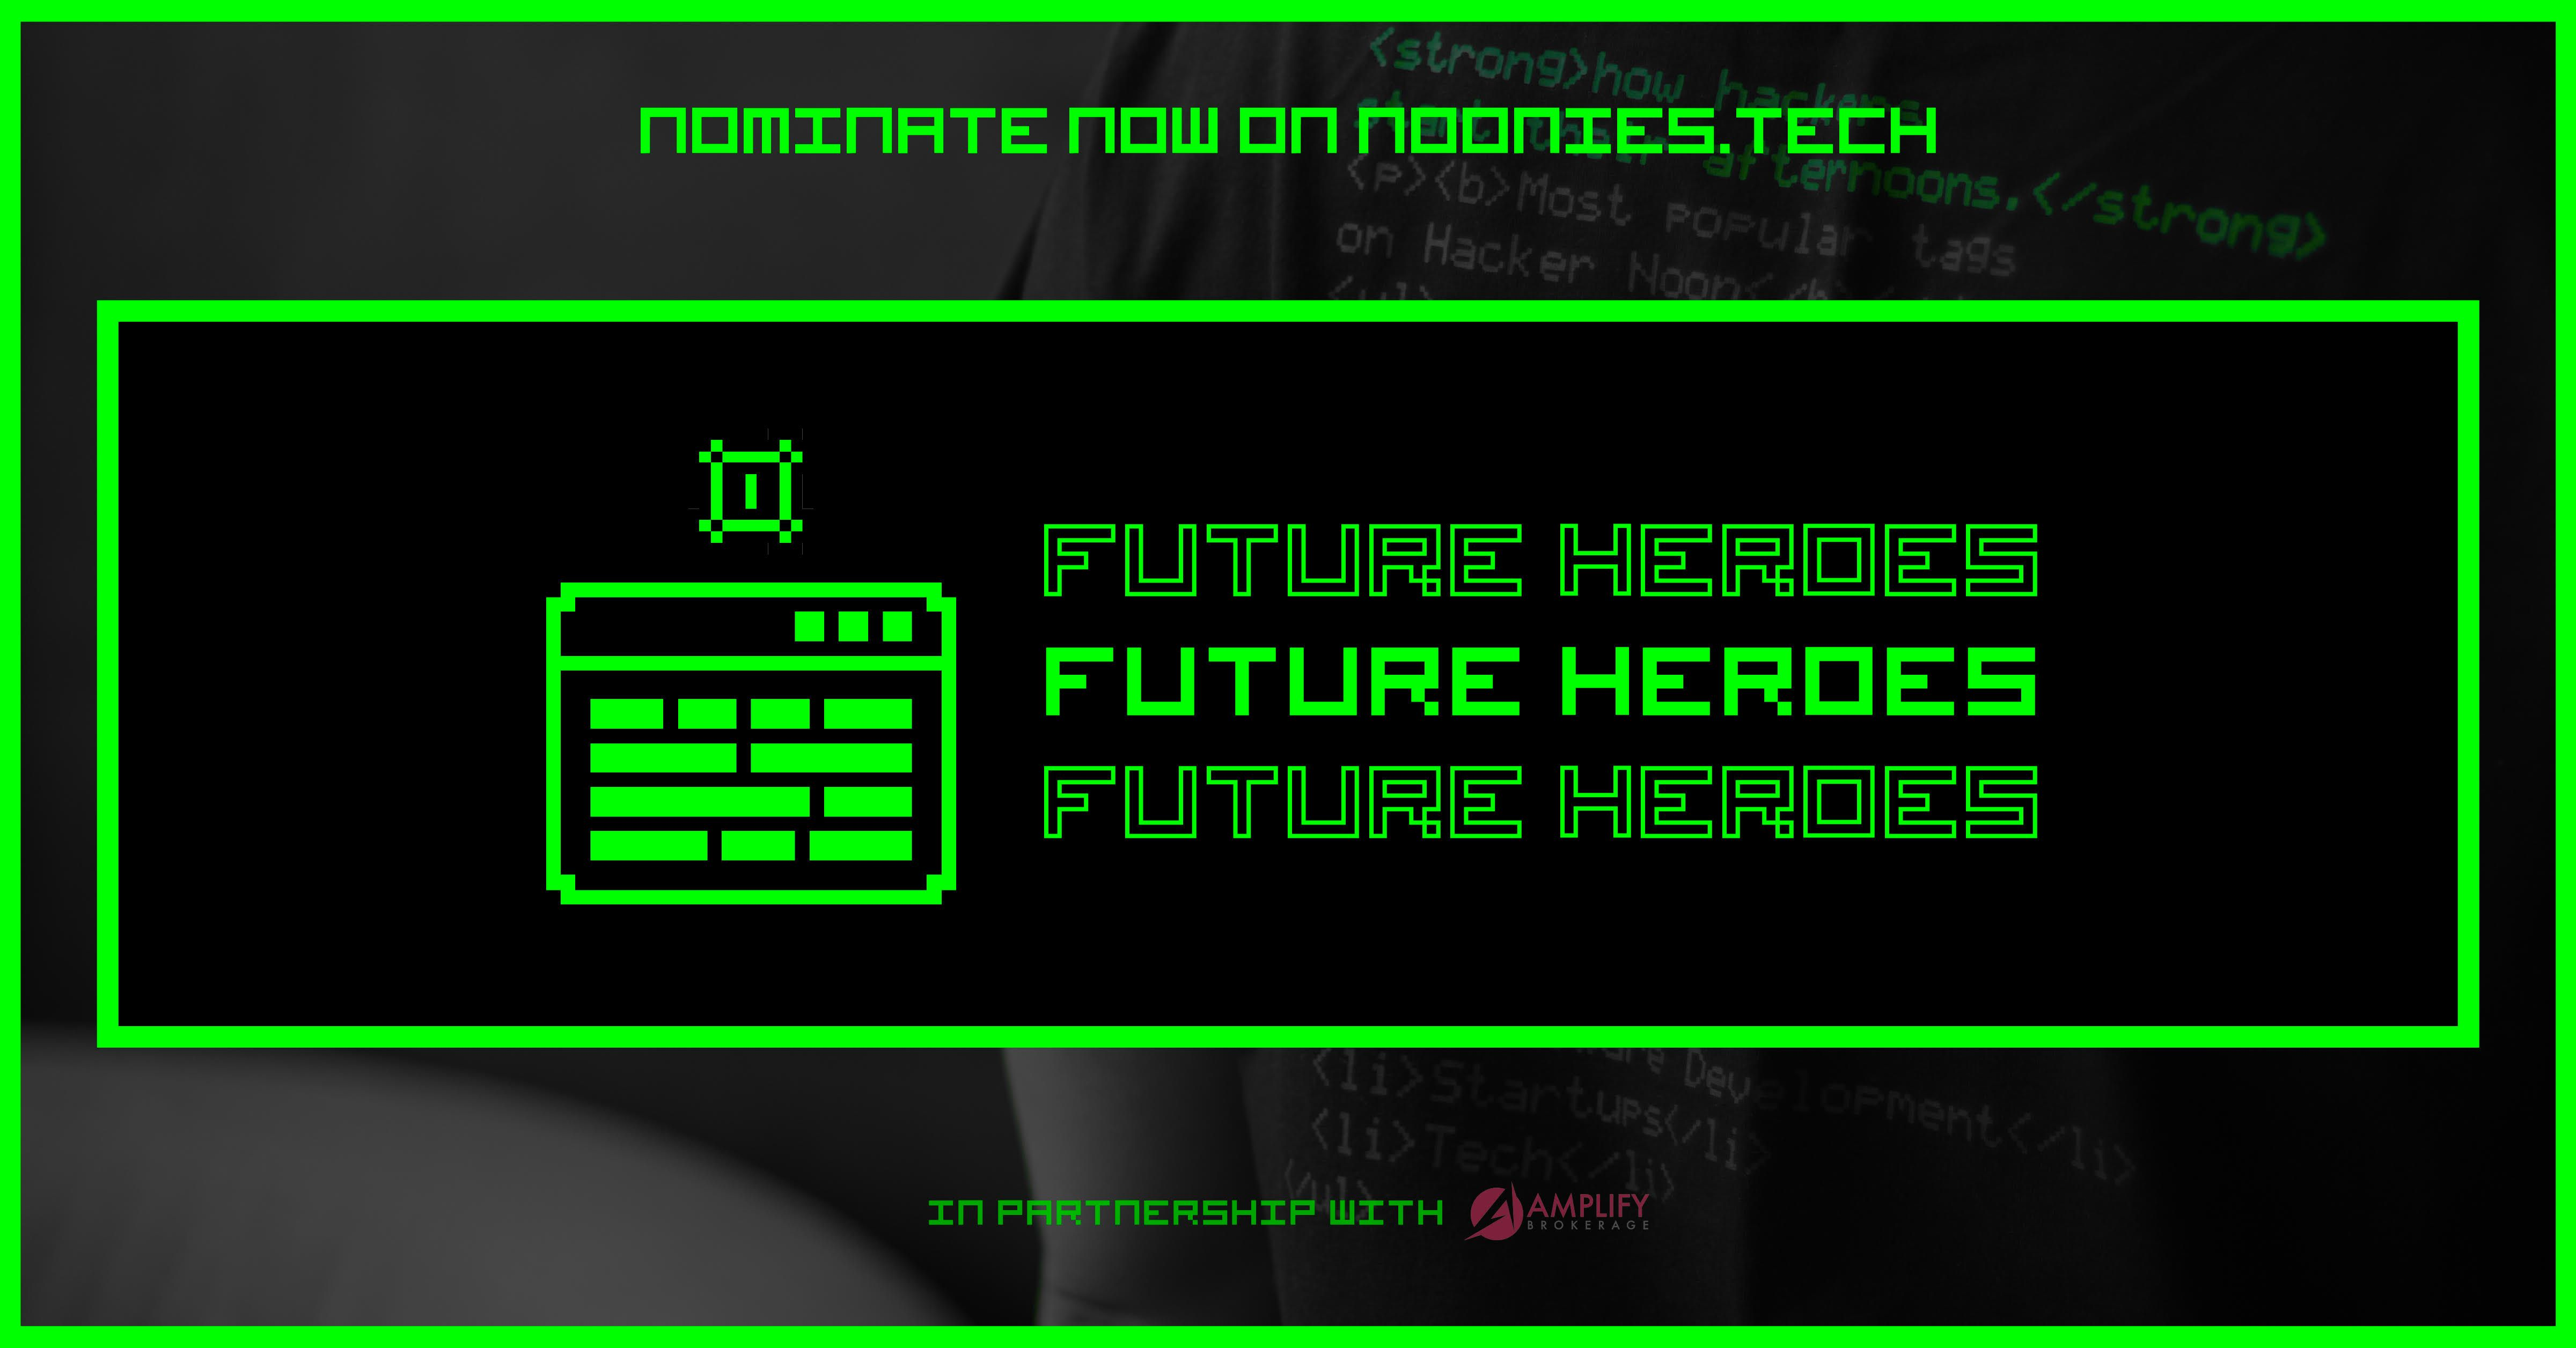 /tech-can-remove-suffering-and-build-a-better-society-six-time-noonie-nominee-ishan-pandey-hx5i3uz9 feature image